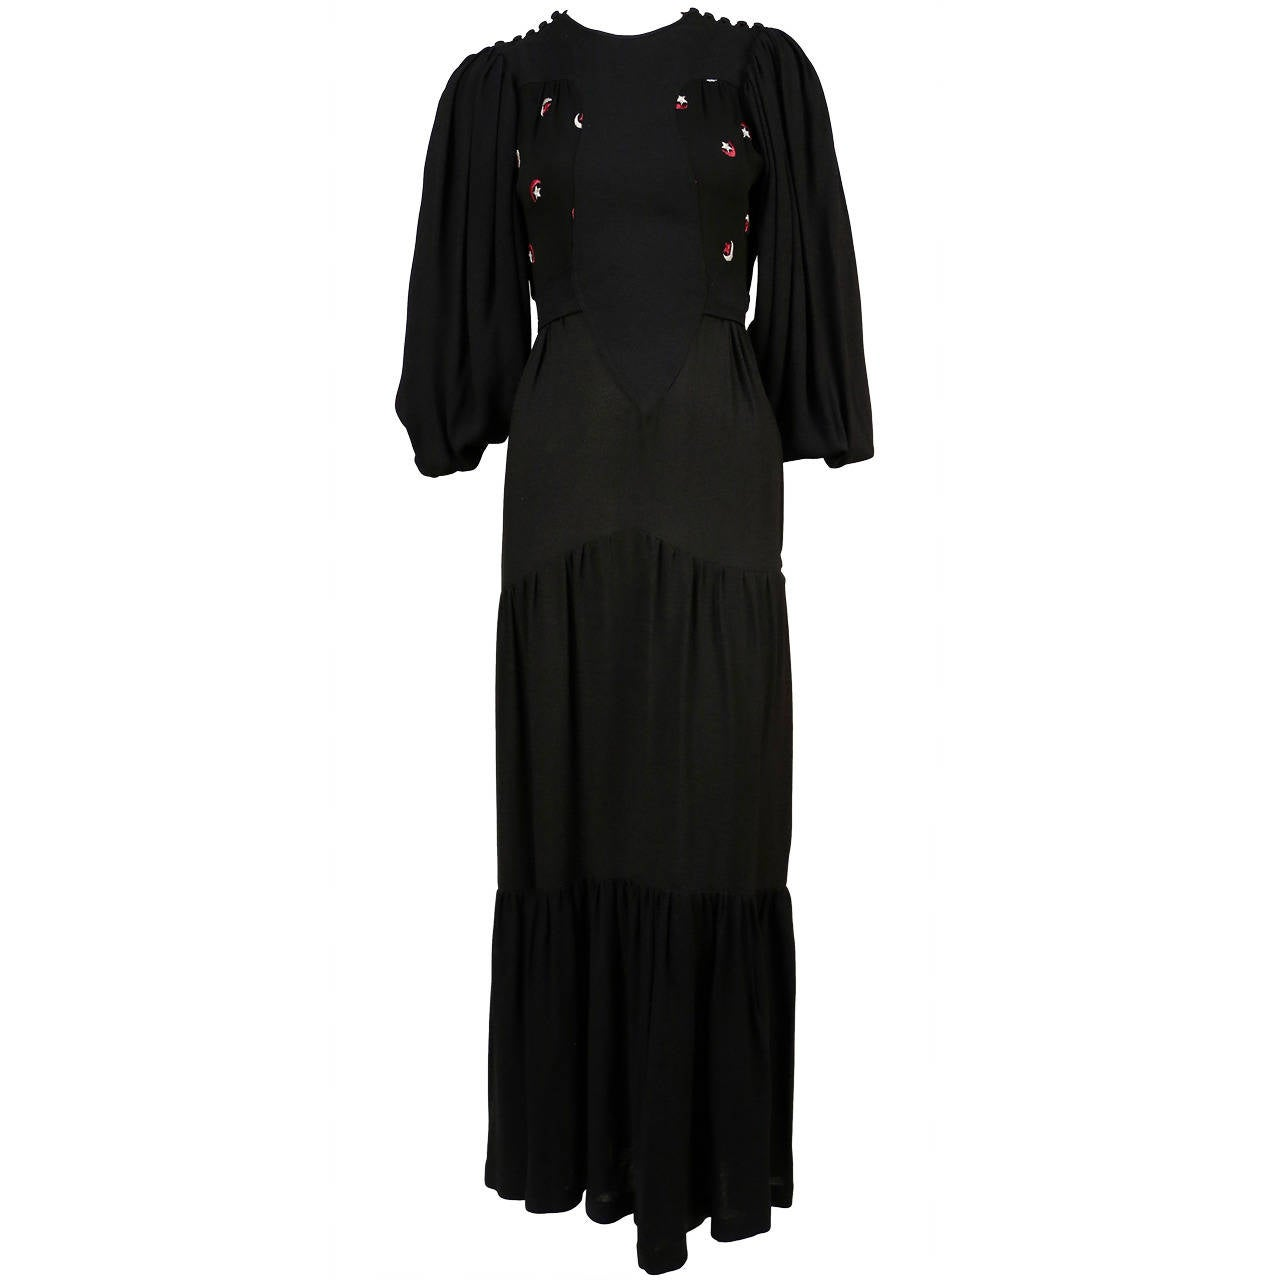 OSSIE CLARK Quorum black moss crepe dress with embroidered moons & stars For Sale